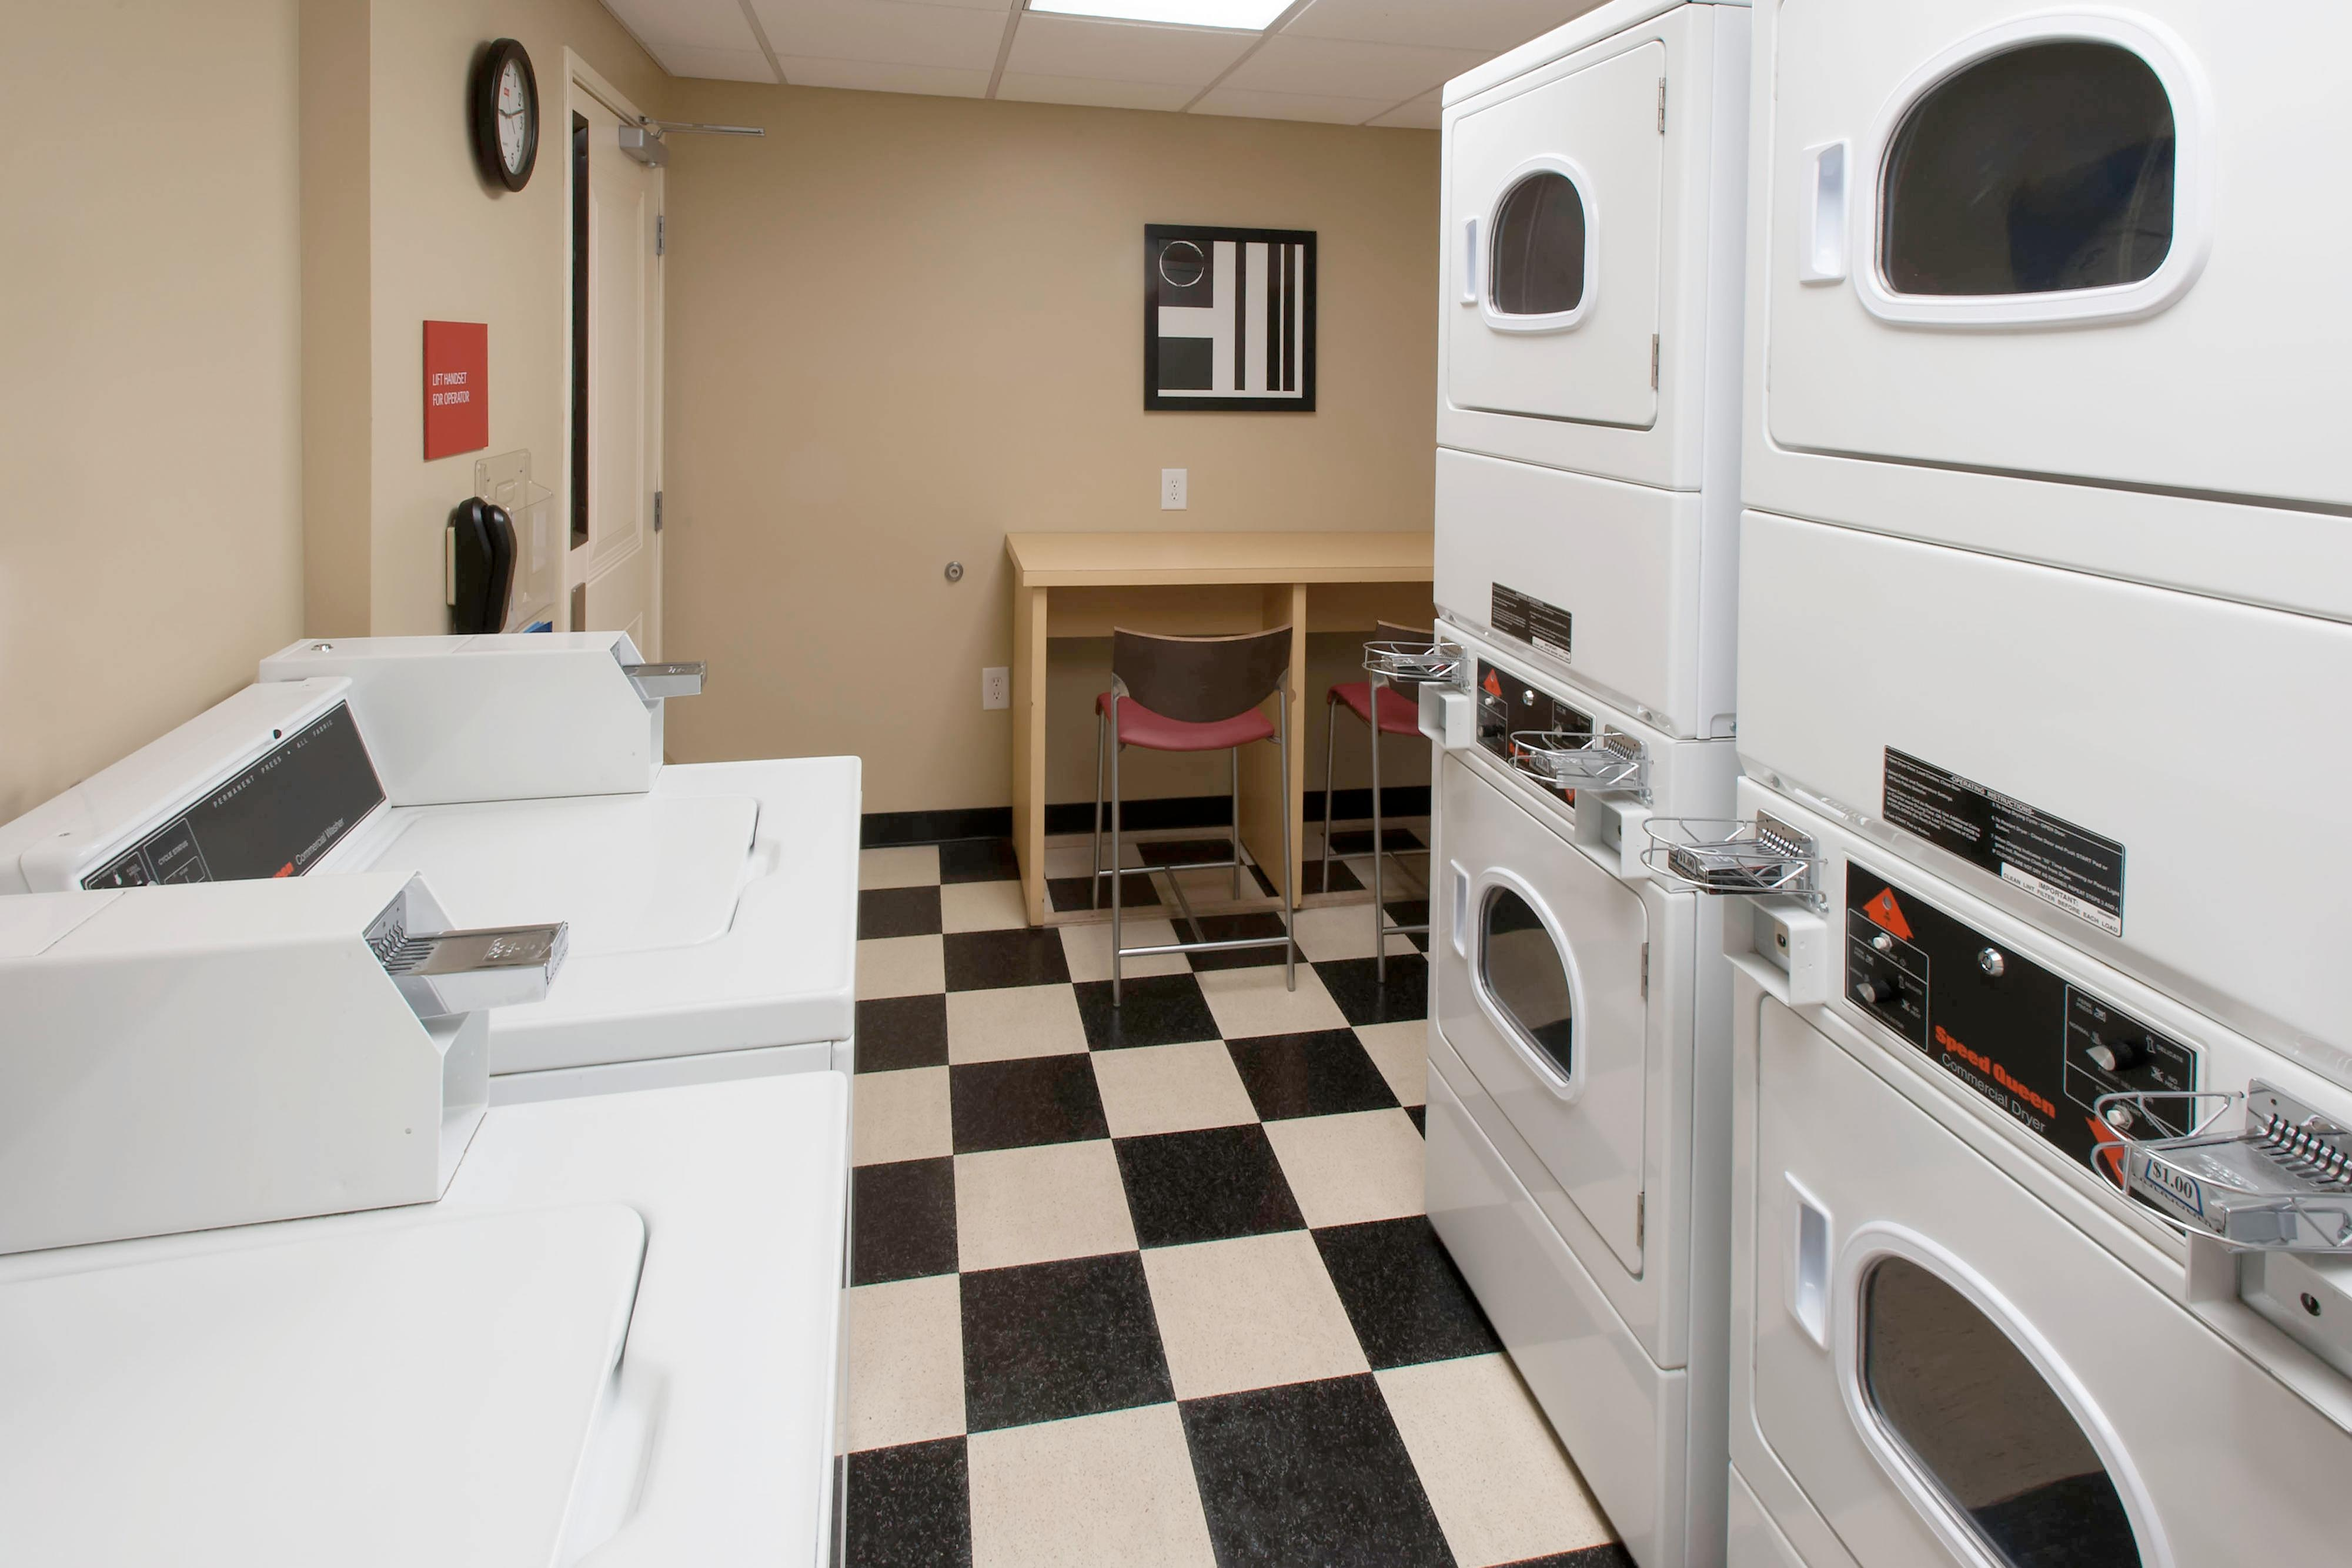 Laundry Room - Jacksonville NC hotels